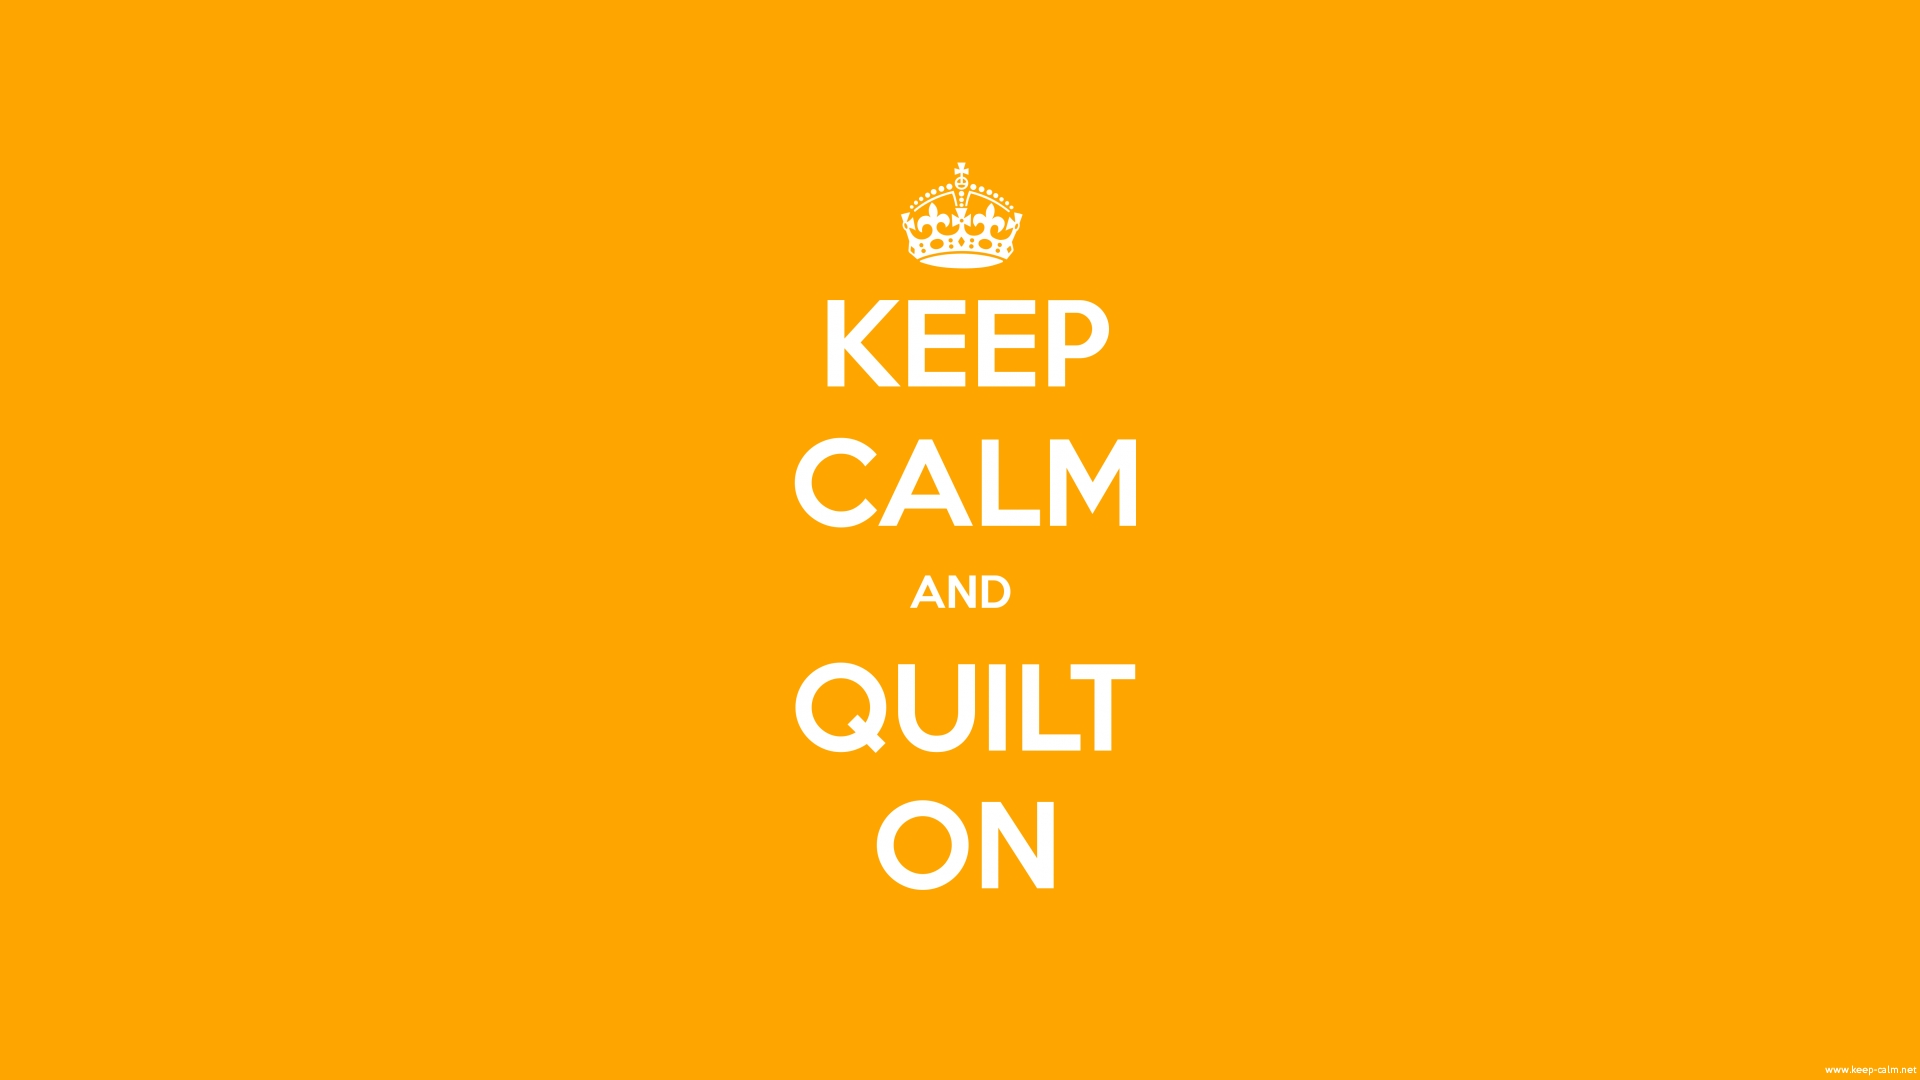 keep-calm-and-quilt-on-1920-1080-white-orange